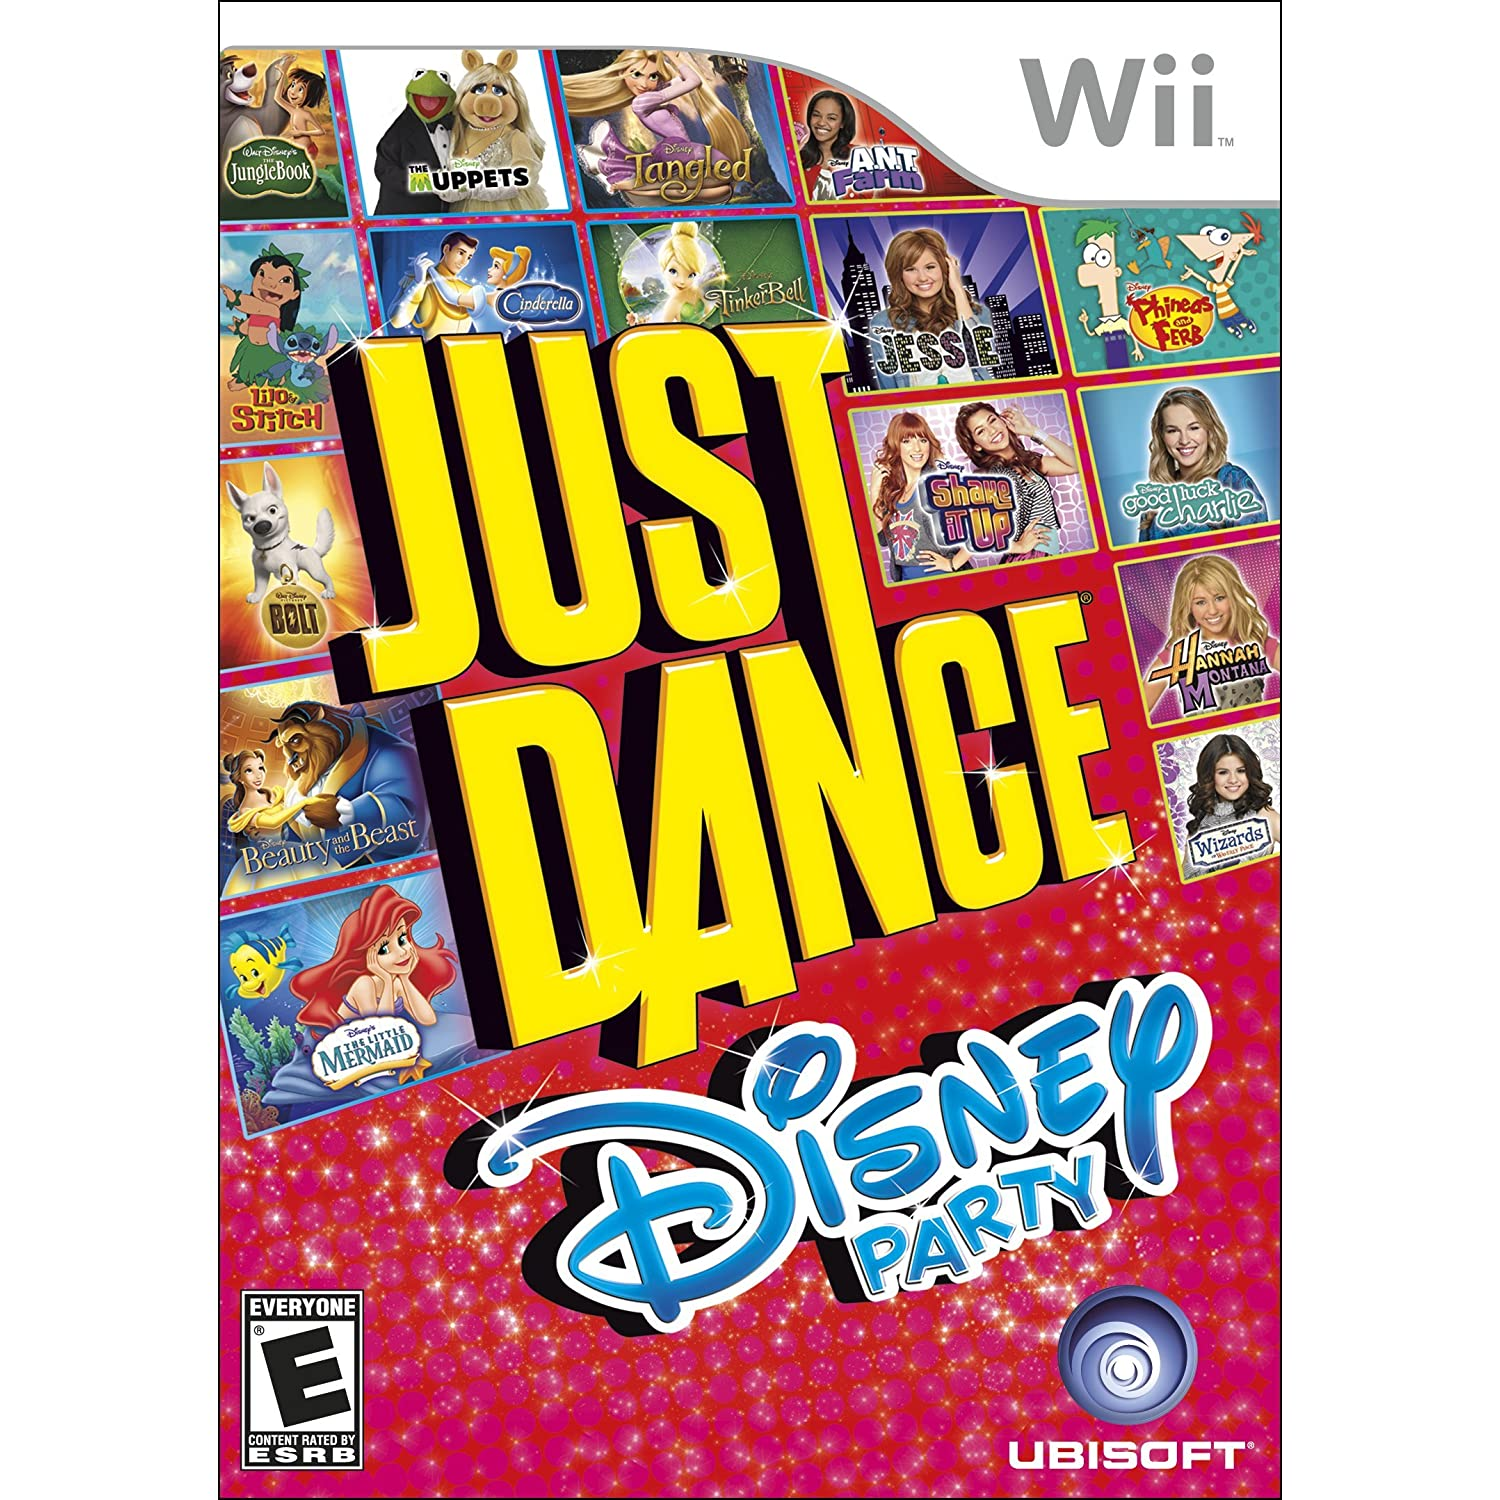 Just dance disney party kid review all for the boys for Classic house hits